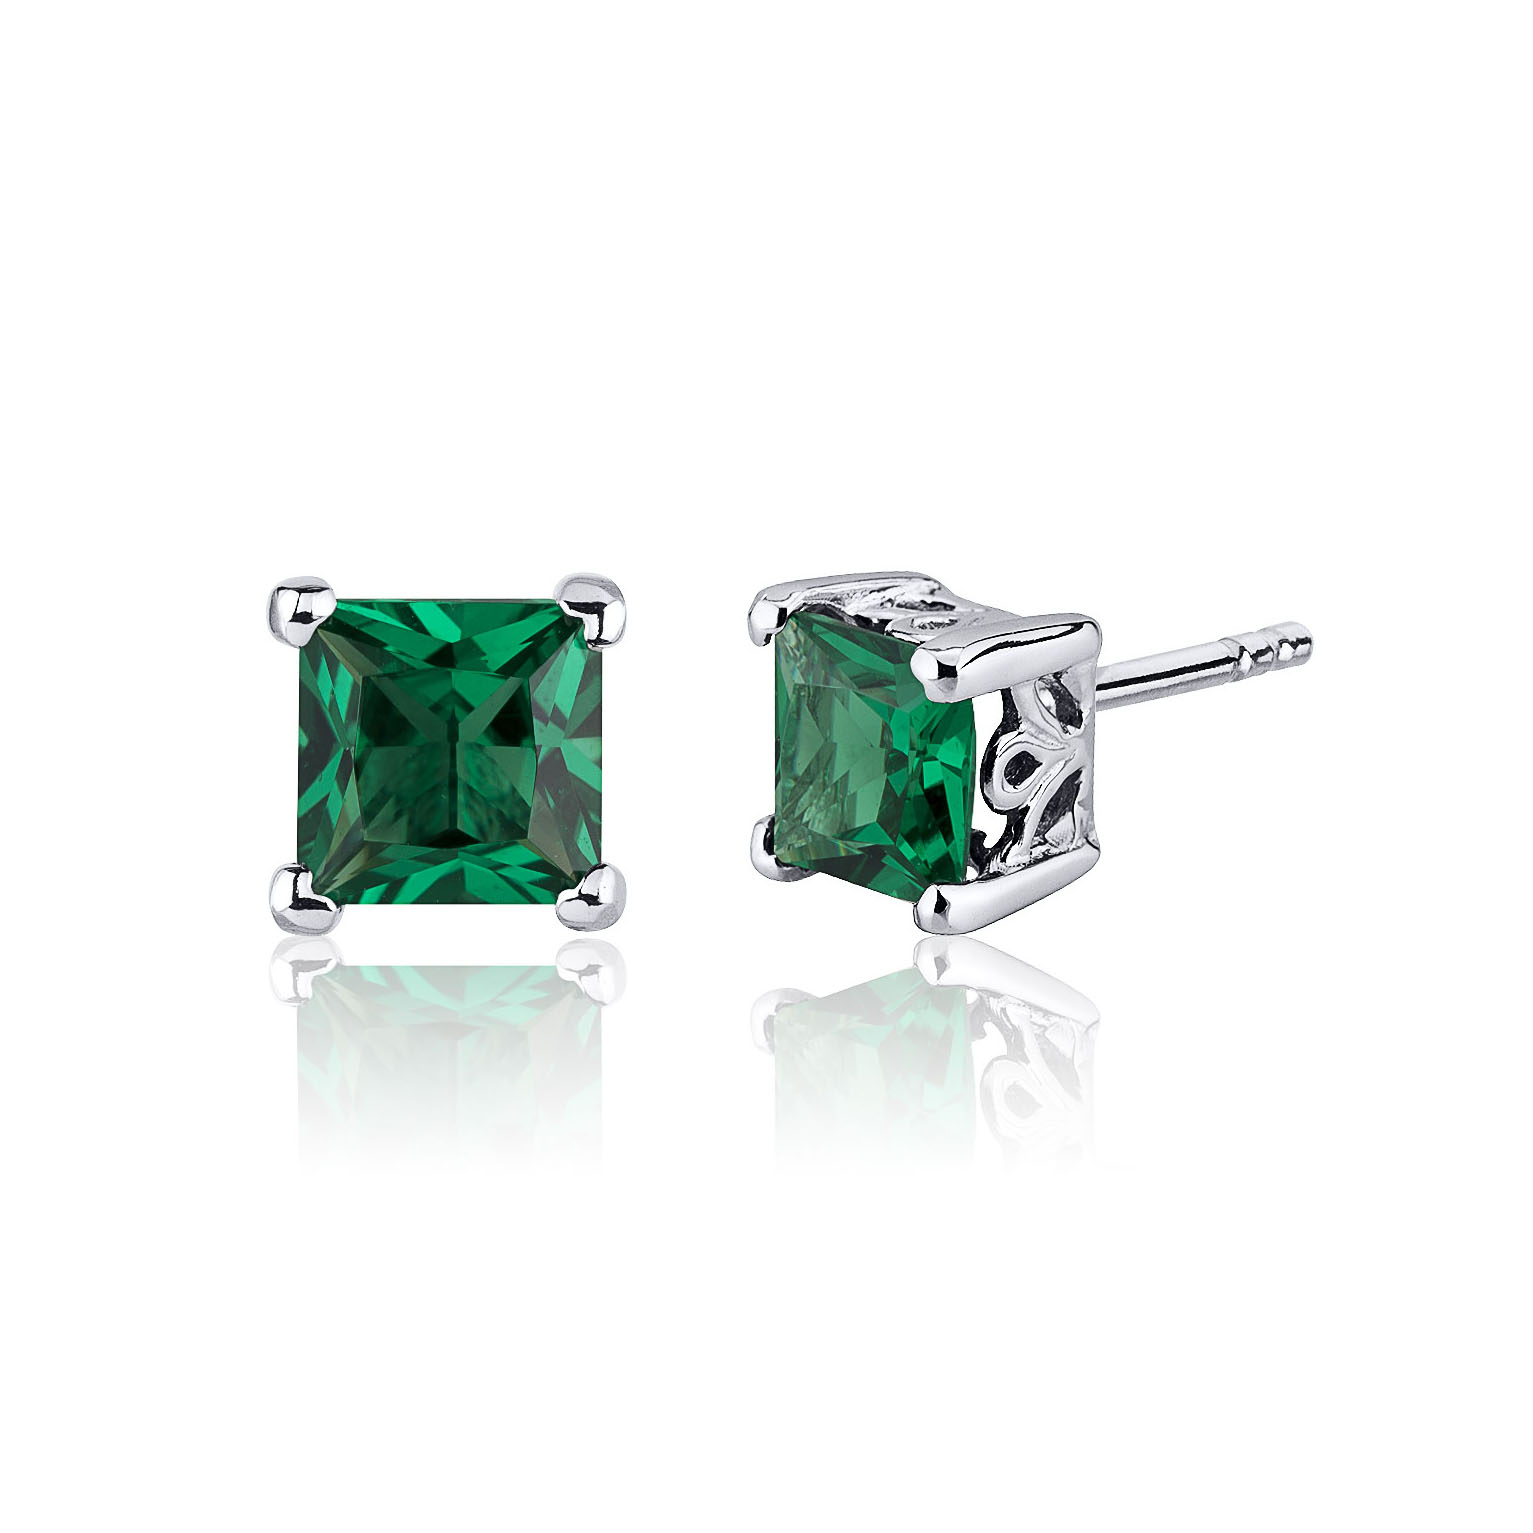 Princess Cut Emerald Stud Earrings in Sterling Silver